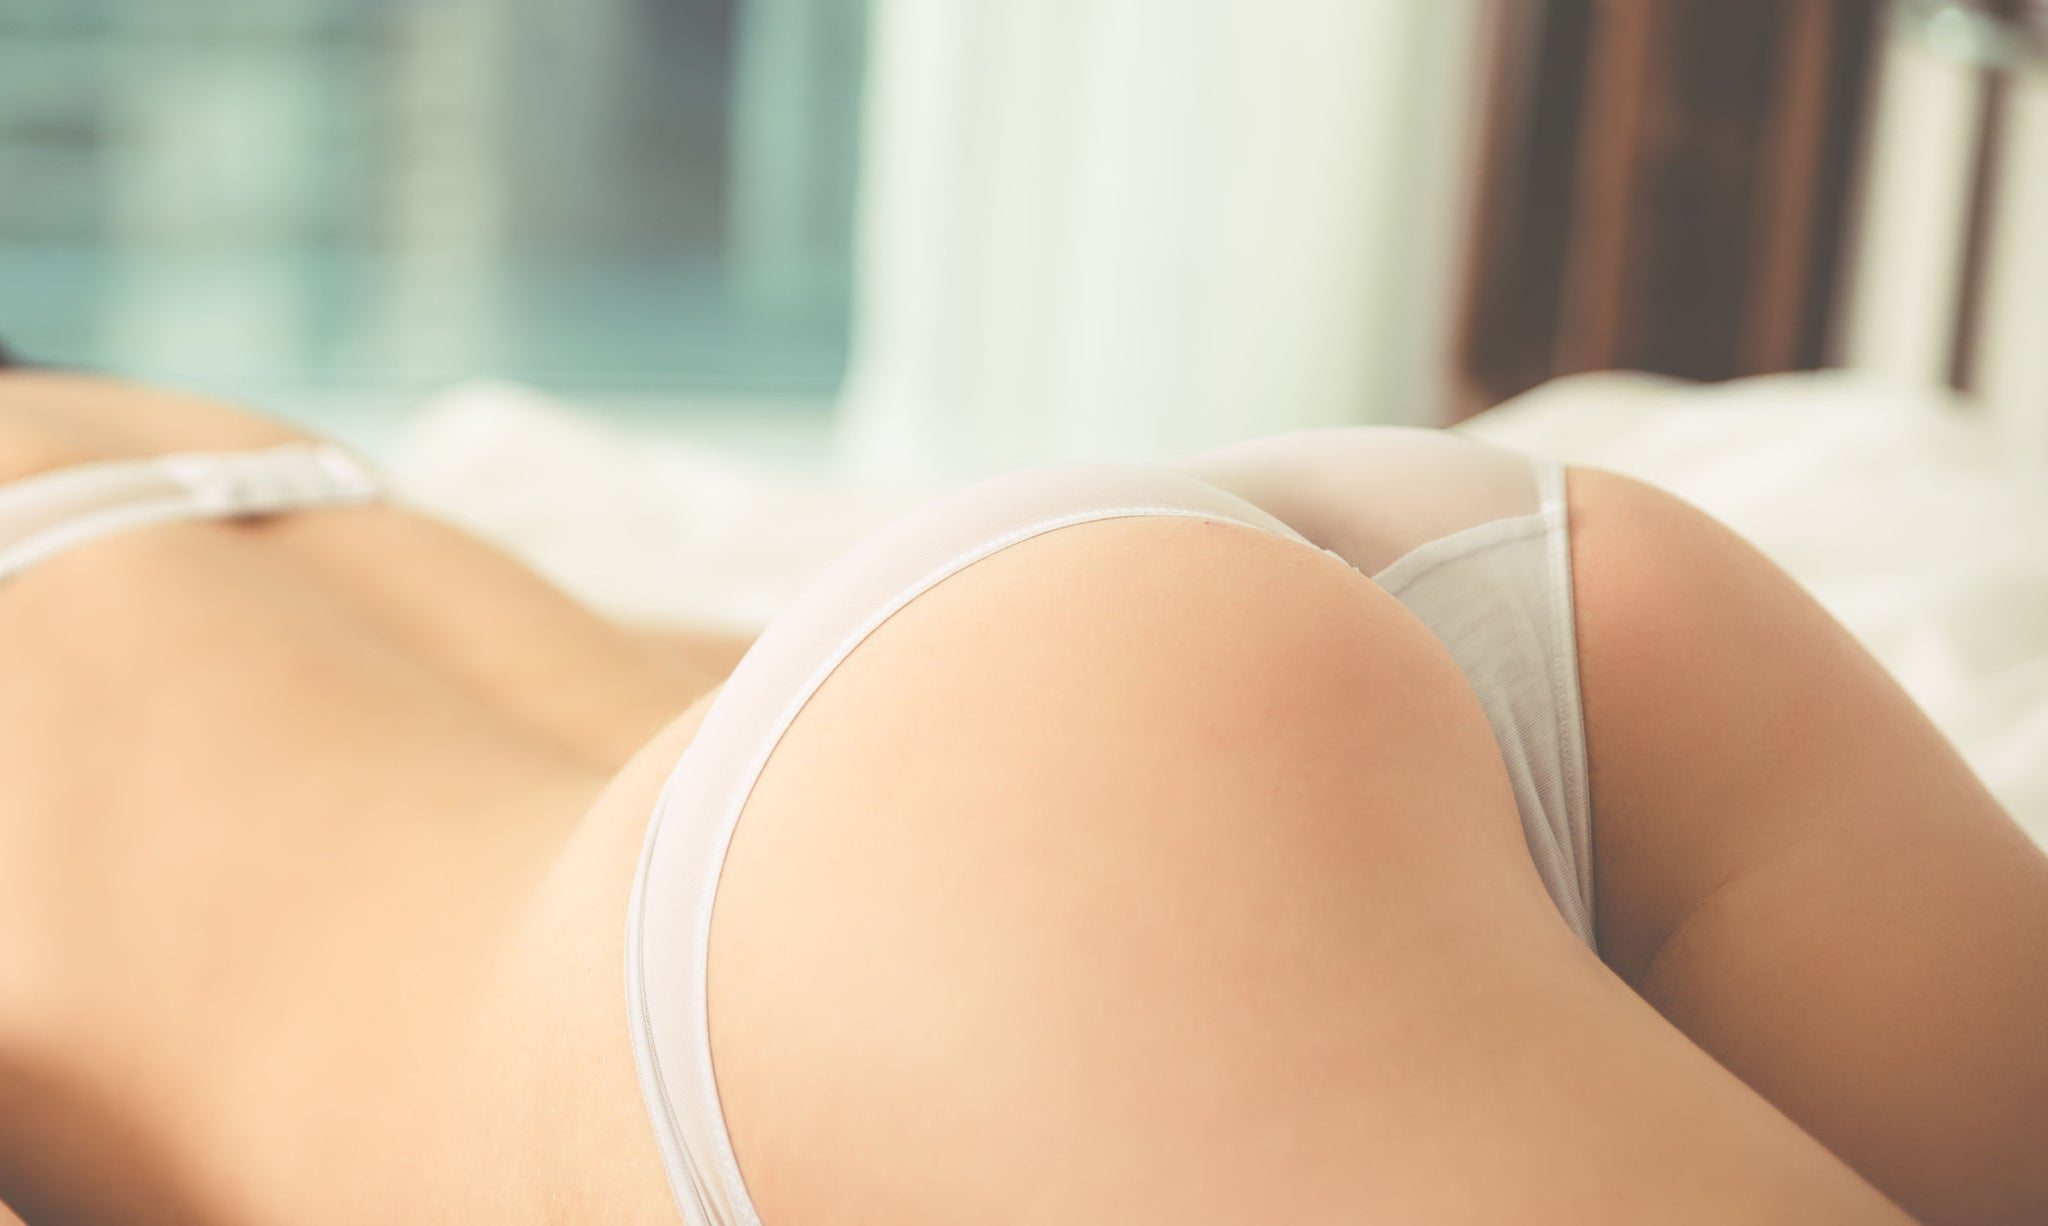 Damage caused by anal sex